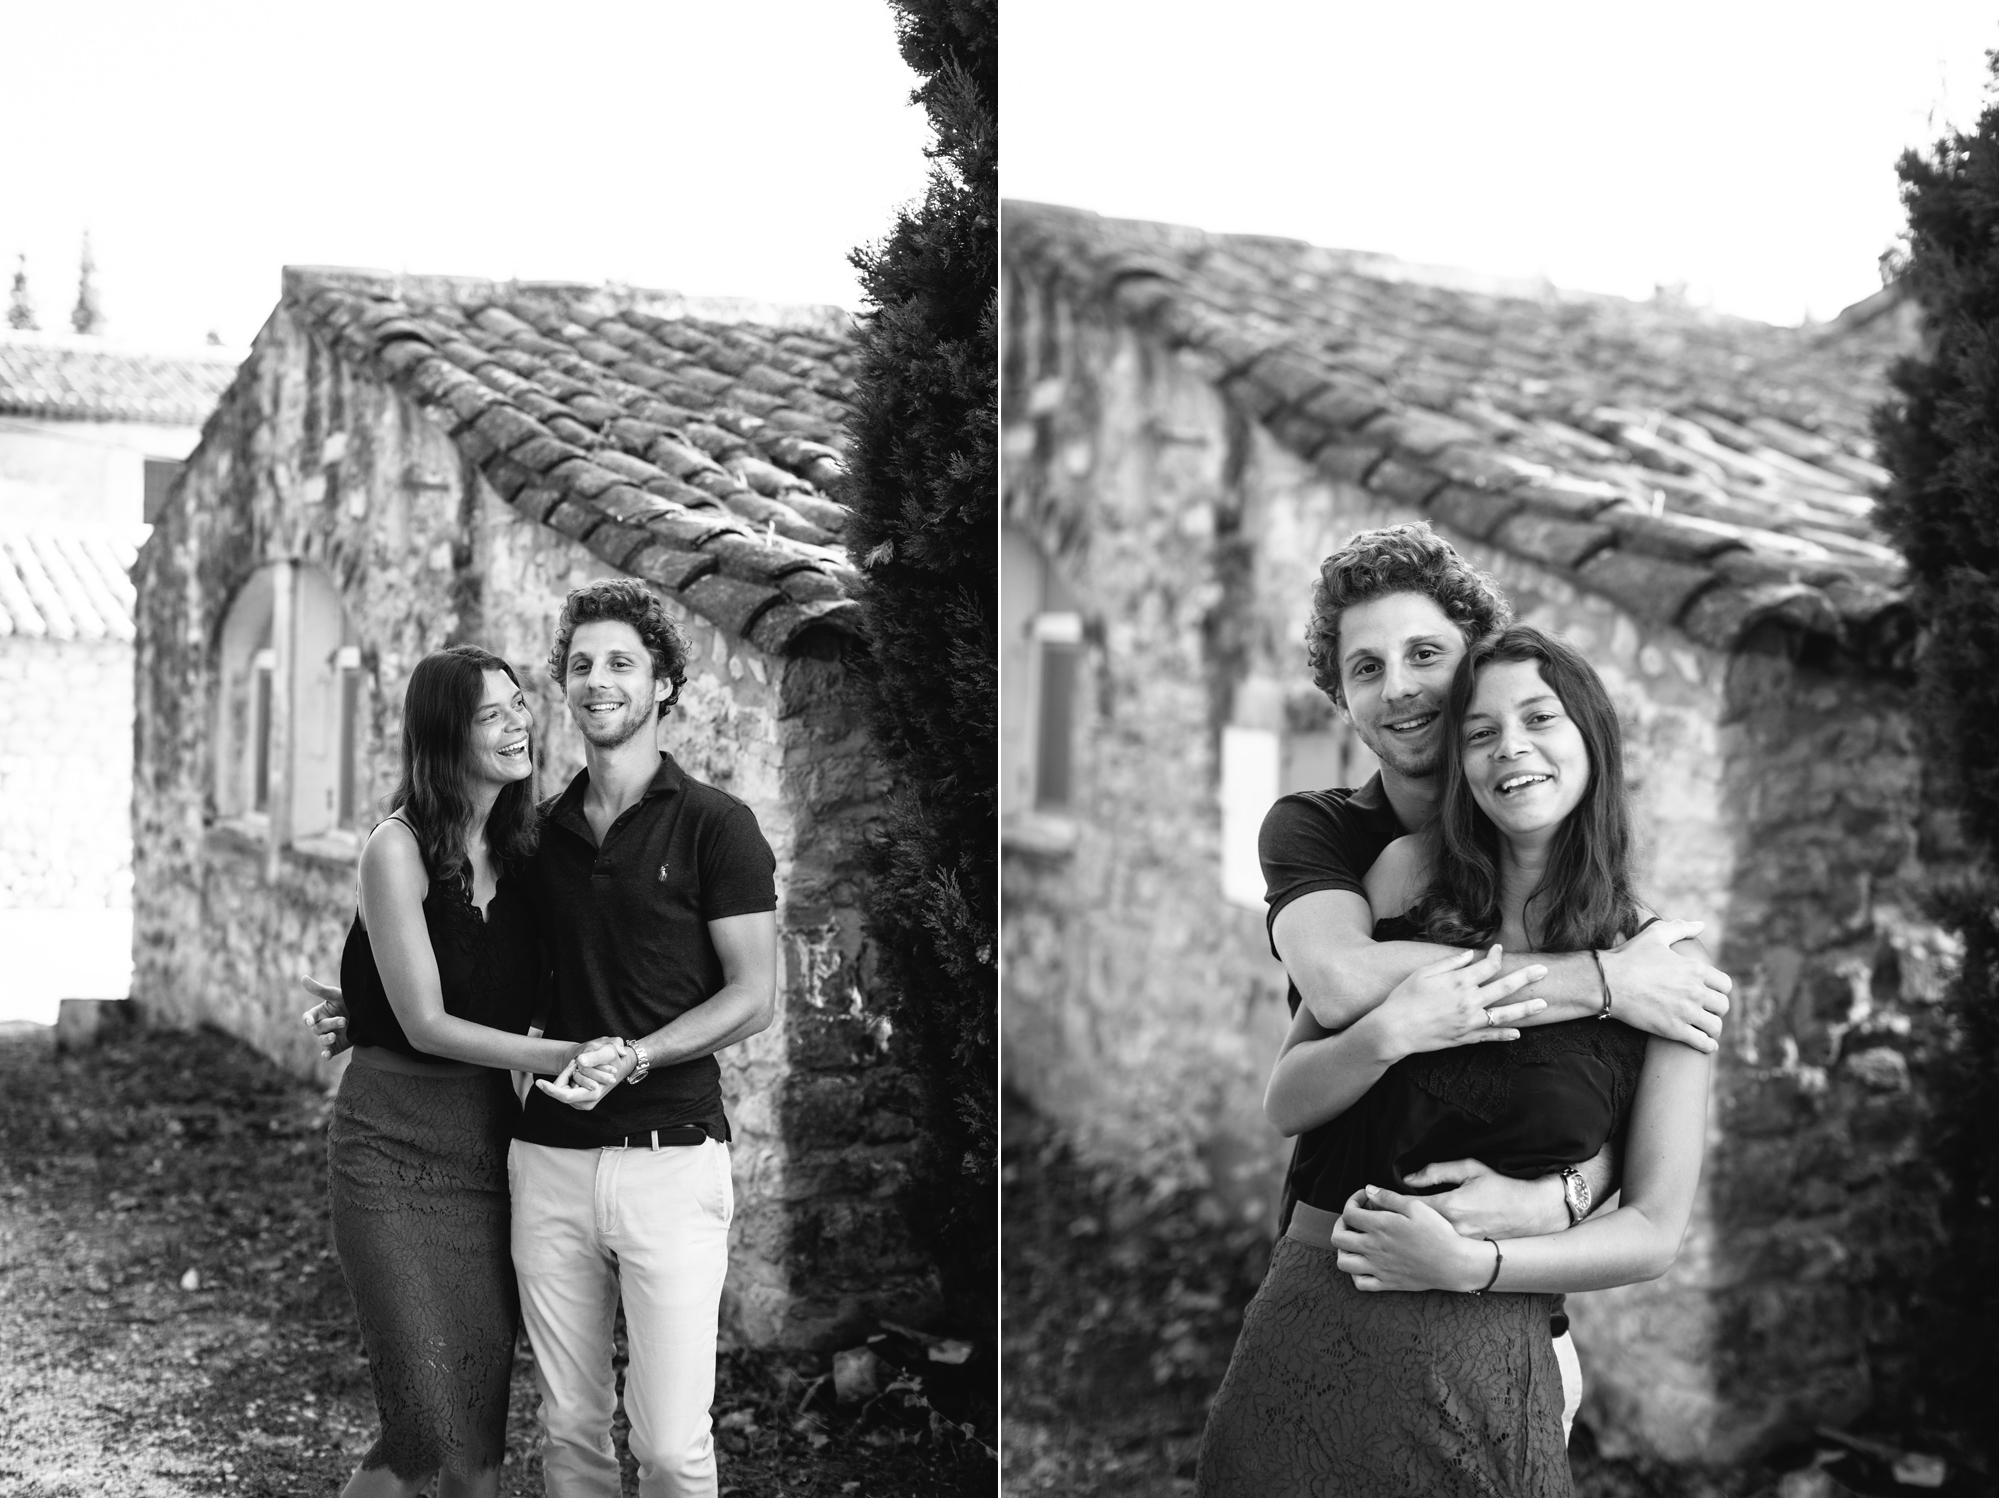 family portrait in Provence, France - Hermione McCosh Photography